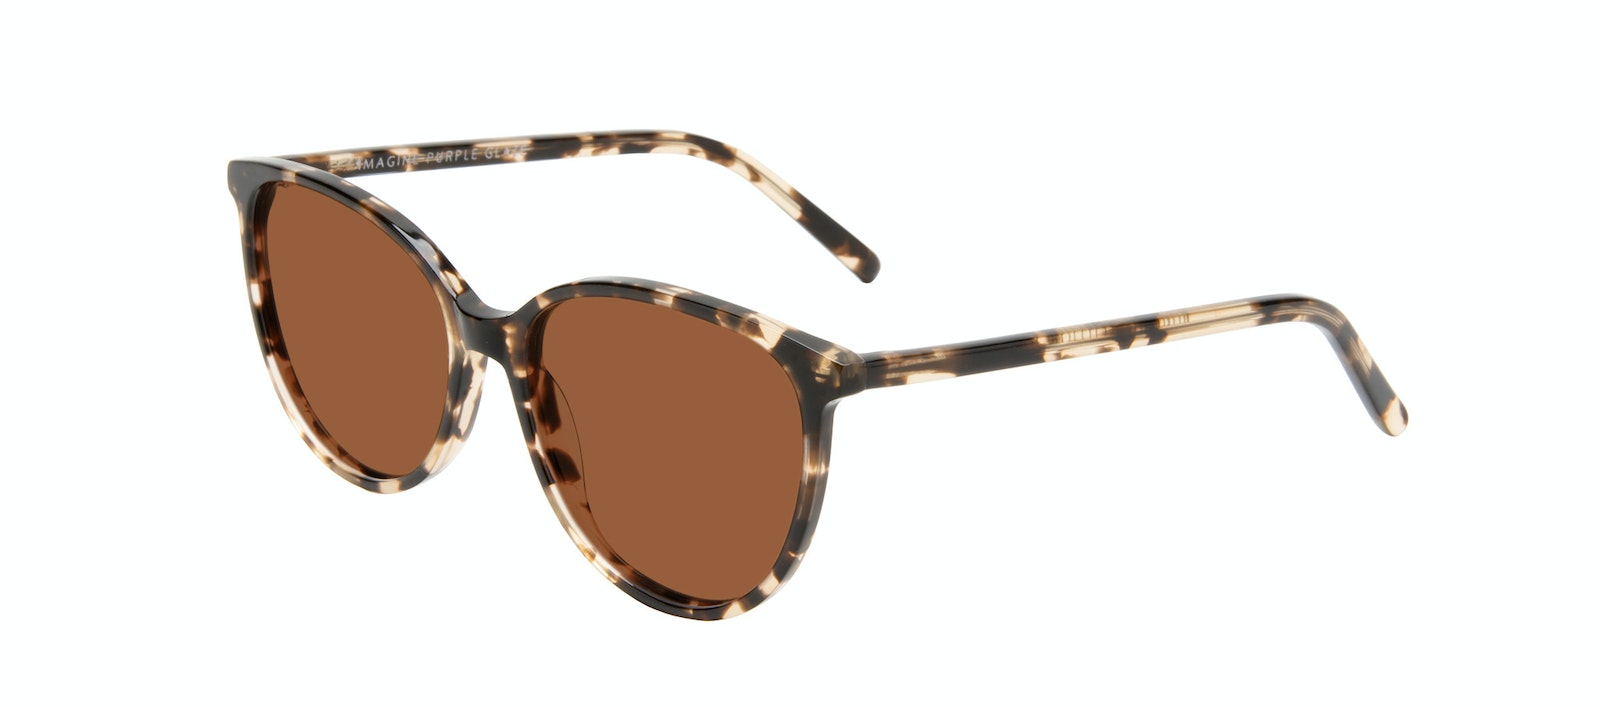 Affordable Fashion Glasses Cat Eye Sunglasses Women Imagine Leopard Tilt